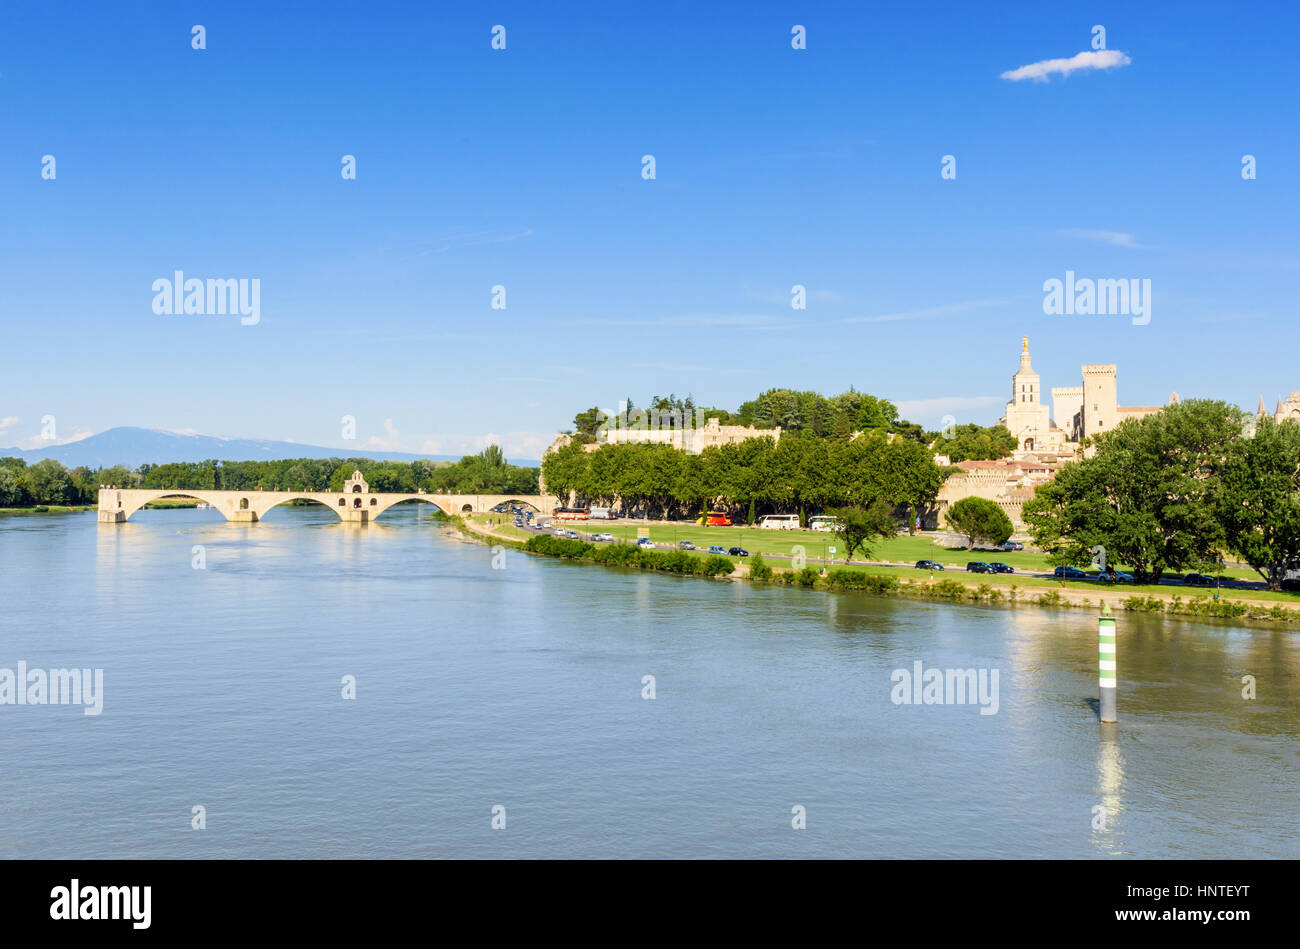 Pont Saint-Bénézet and Avignon Cathedral in the distance, Avignon, France - Stock Image